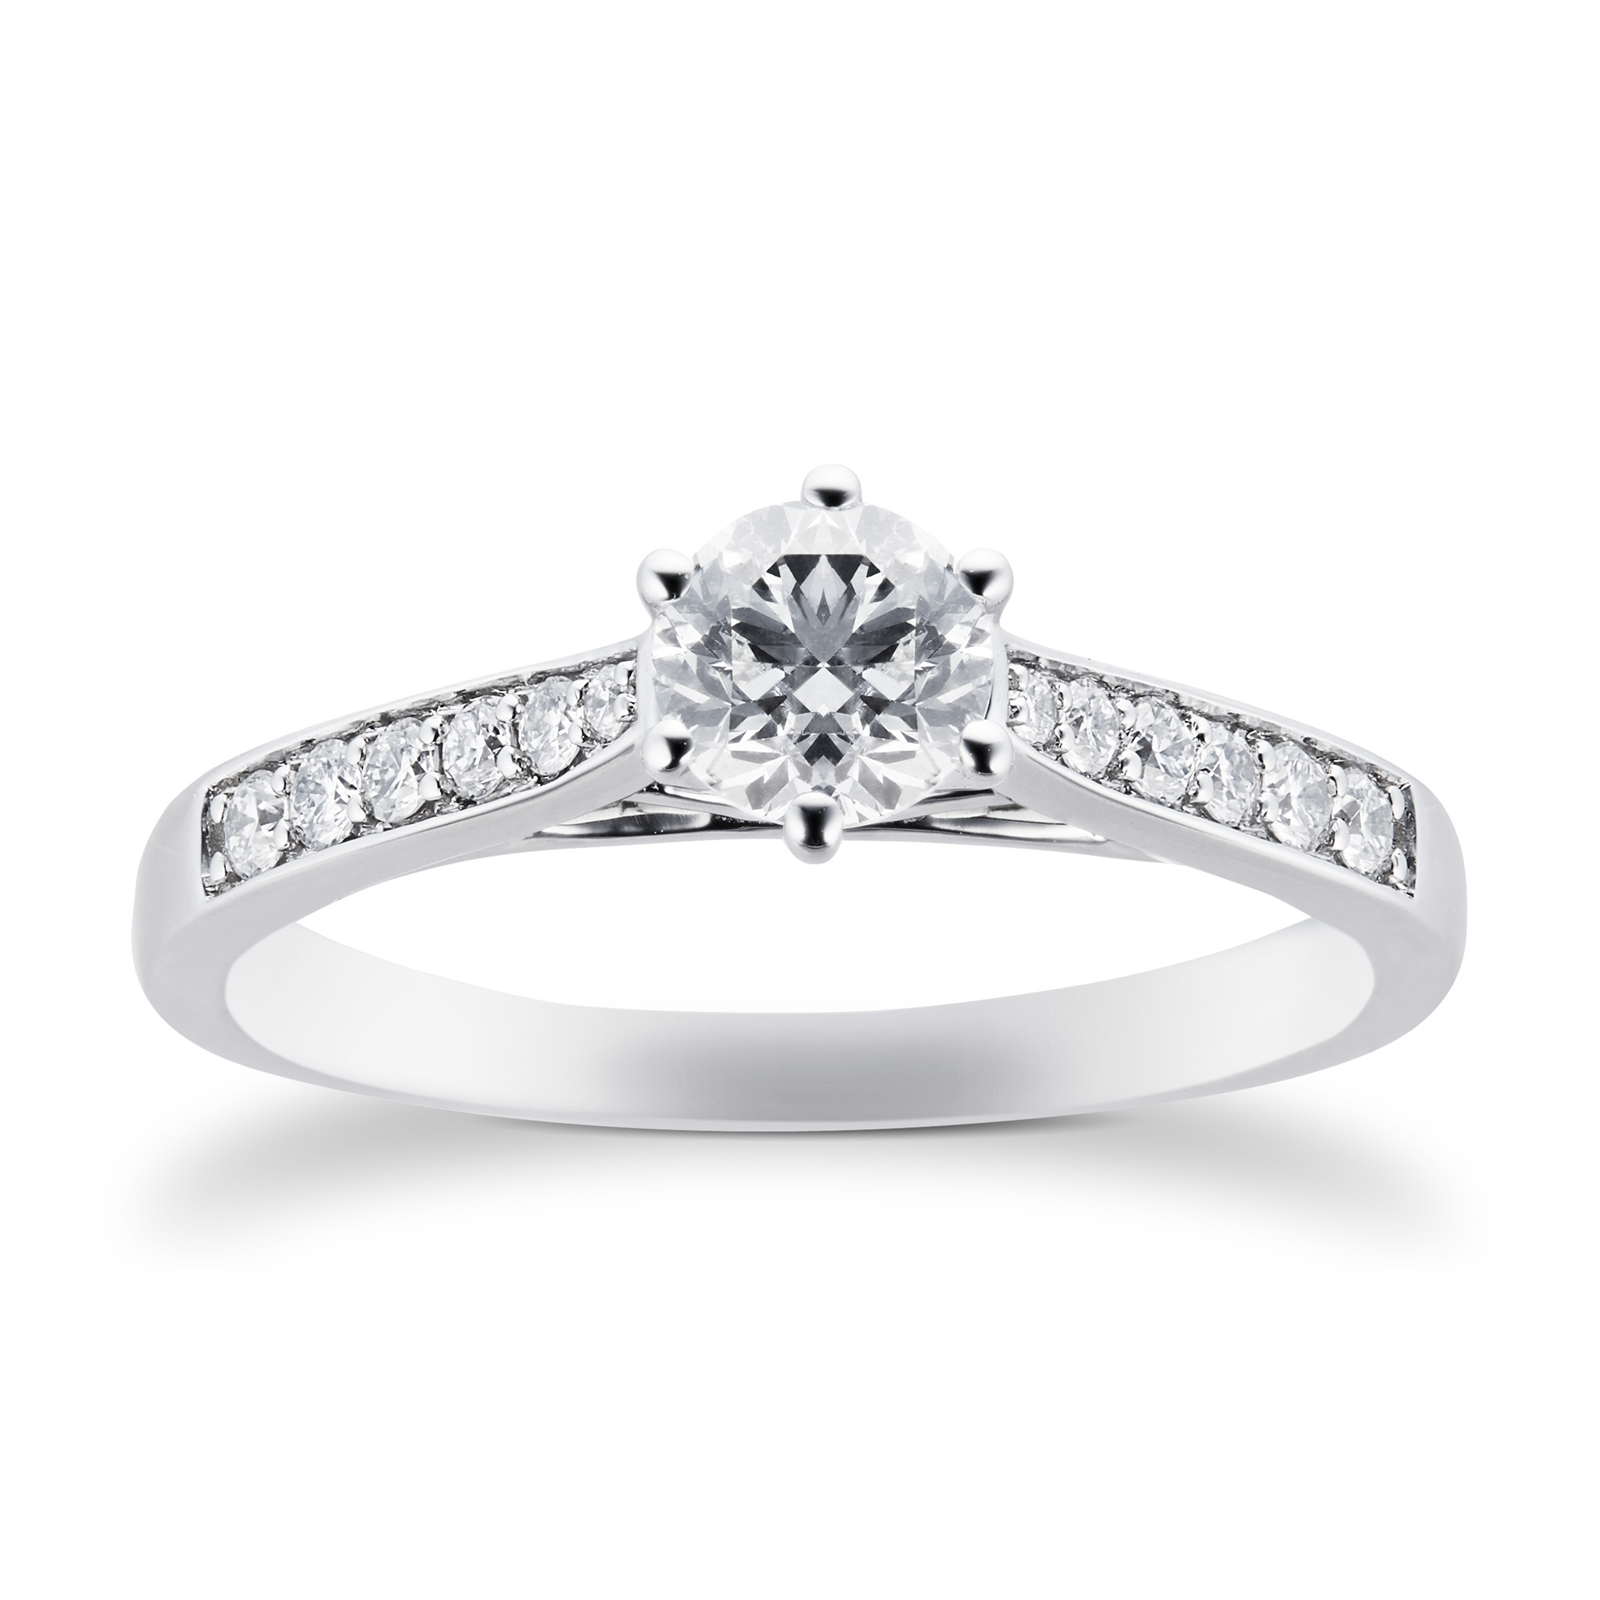 Platinum Brilliant Cut 0.65 Carat 88 Facet Diamond Ring